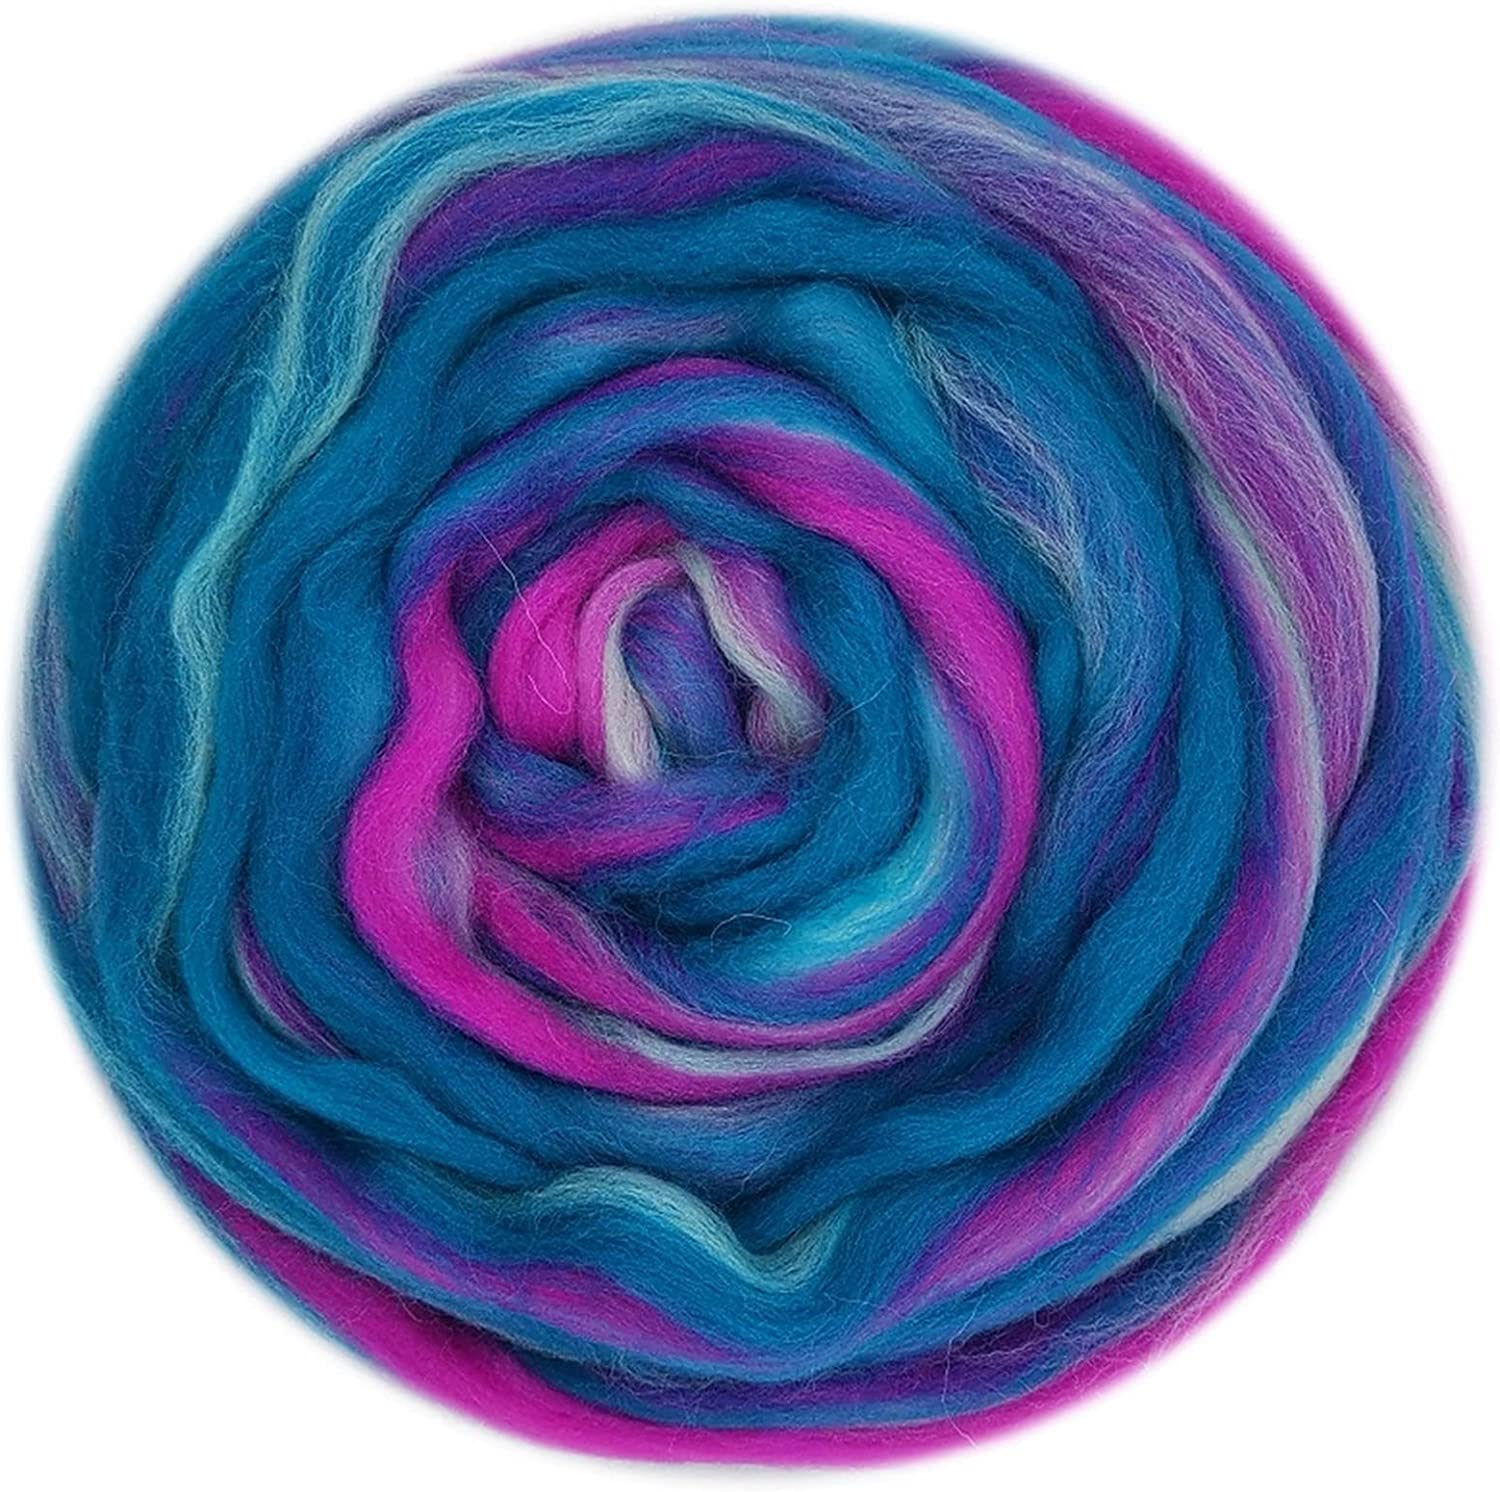 LJLWX Blended Directly managed store Wool roving Han Roving Fees free Mixed 50g